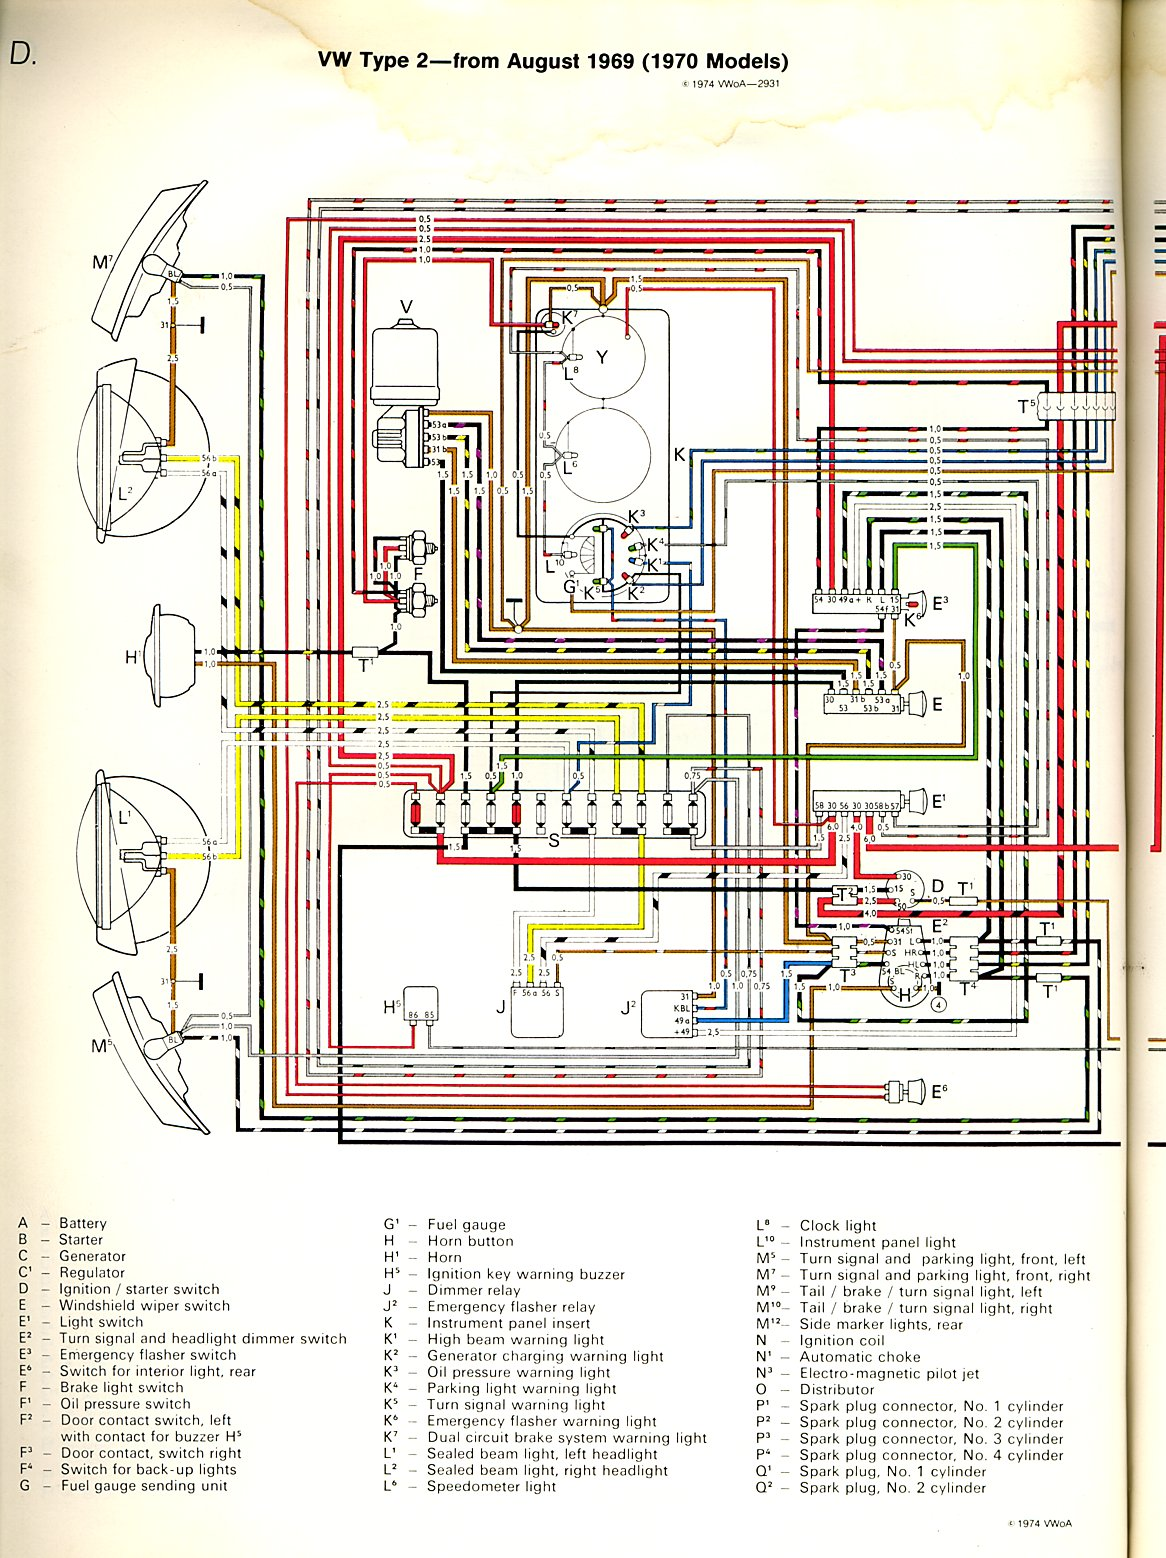 baybus_70a thesamba com type 2 wiring diagrams Typical Ignition Switch Wiring Diagram at creativeand.co